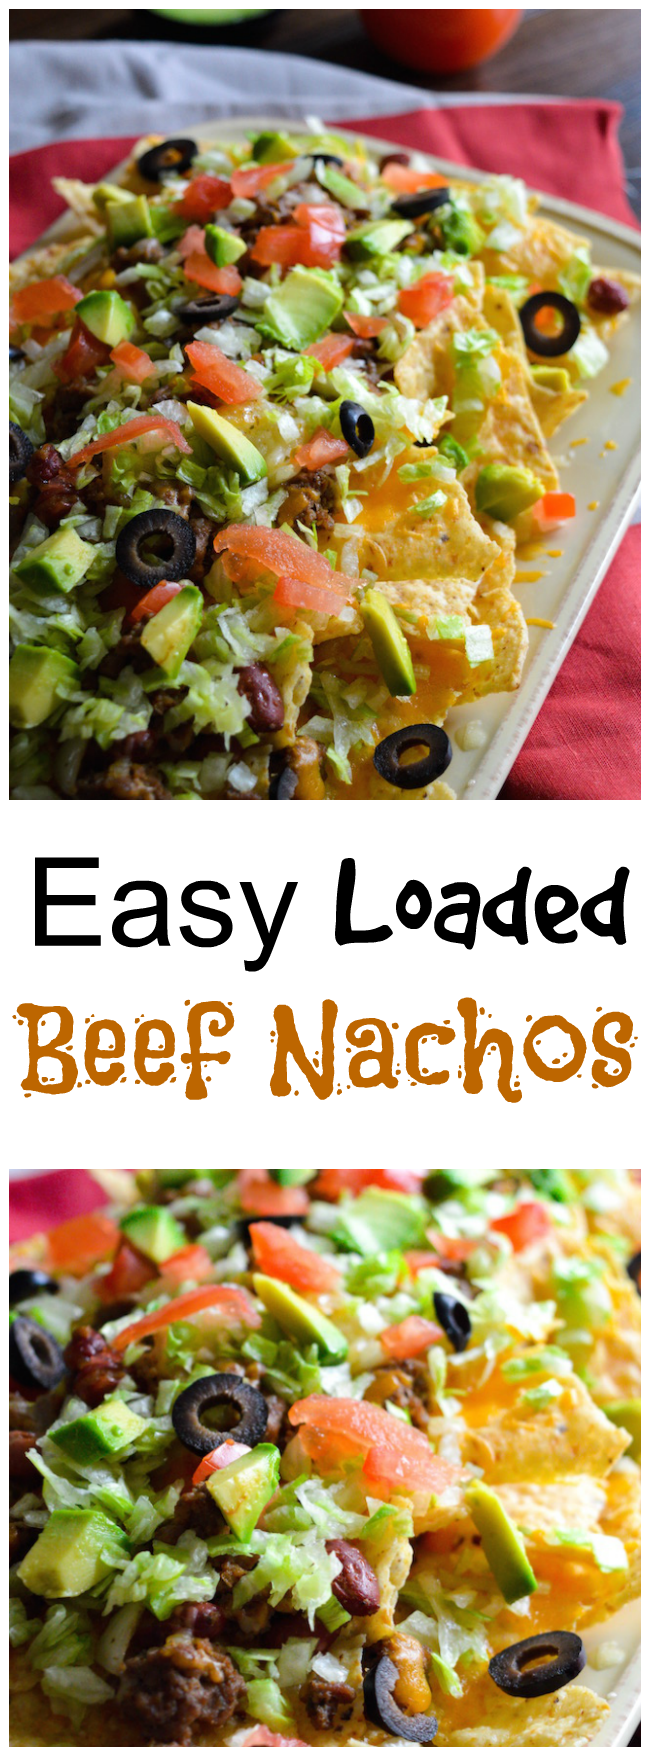 Are you ready for some football? How about an Easy Loaded Beef Nachos recipe that's perfect for the football get together?